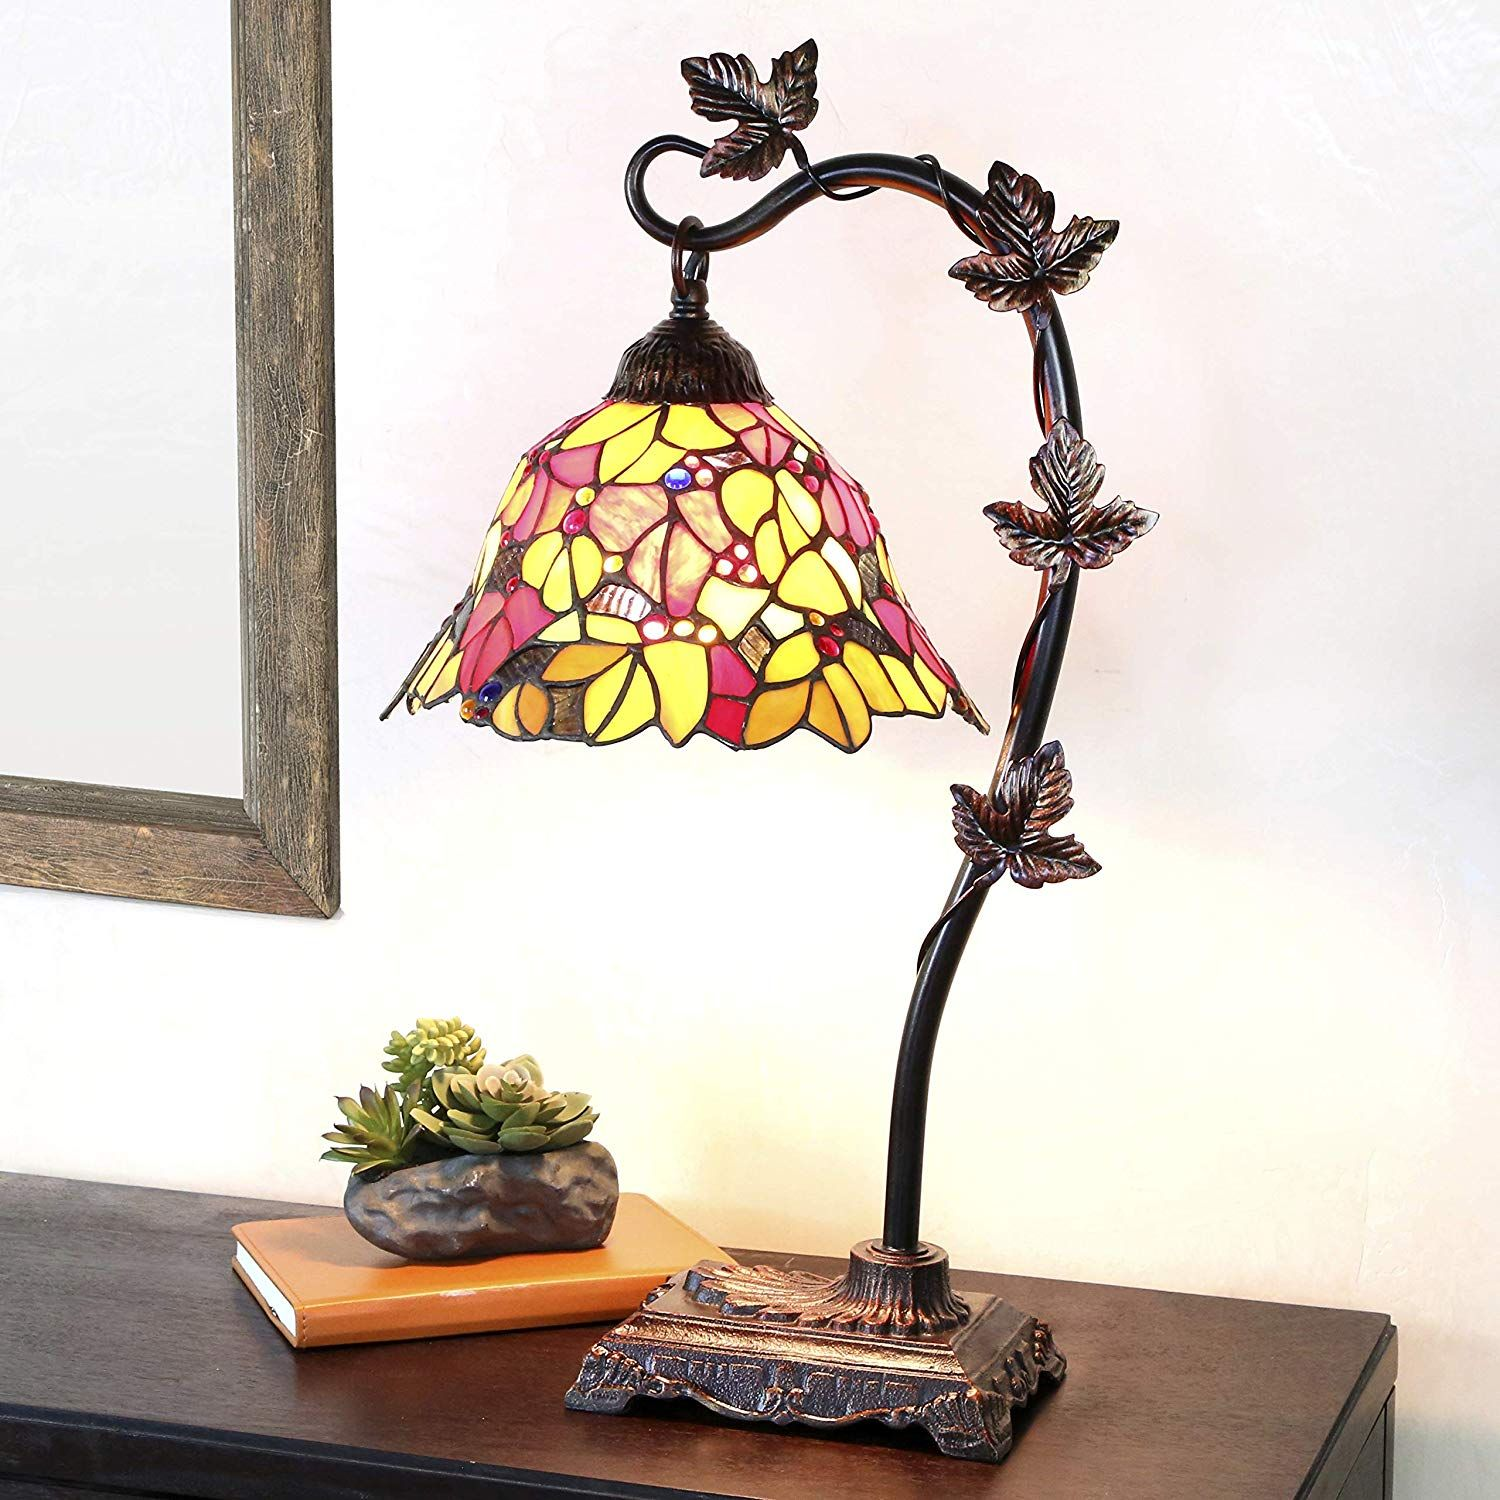 Tiffany Style Stained Glass Table Lamp Stained Glass Table Lamps Tiffany Style Table Lamps Glass Desk Lamps